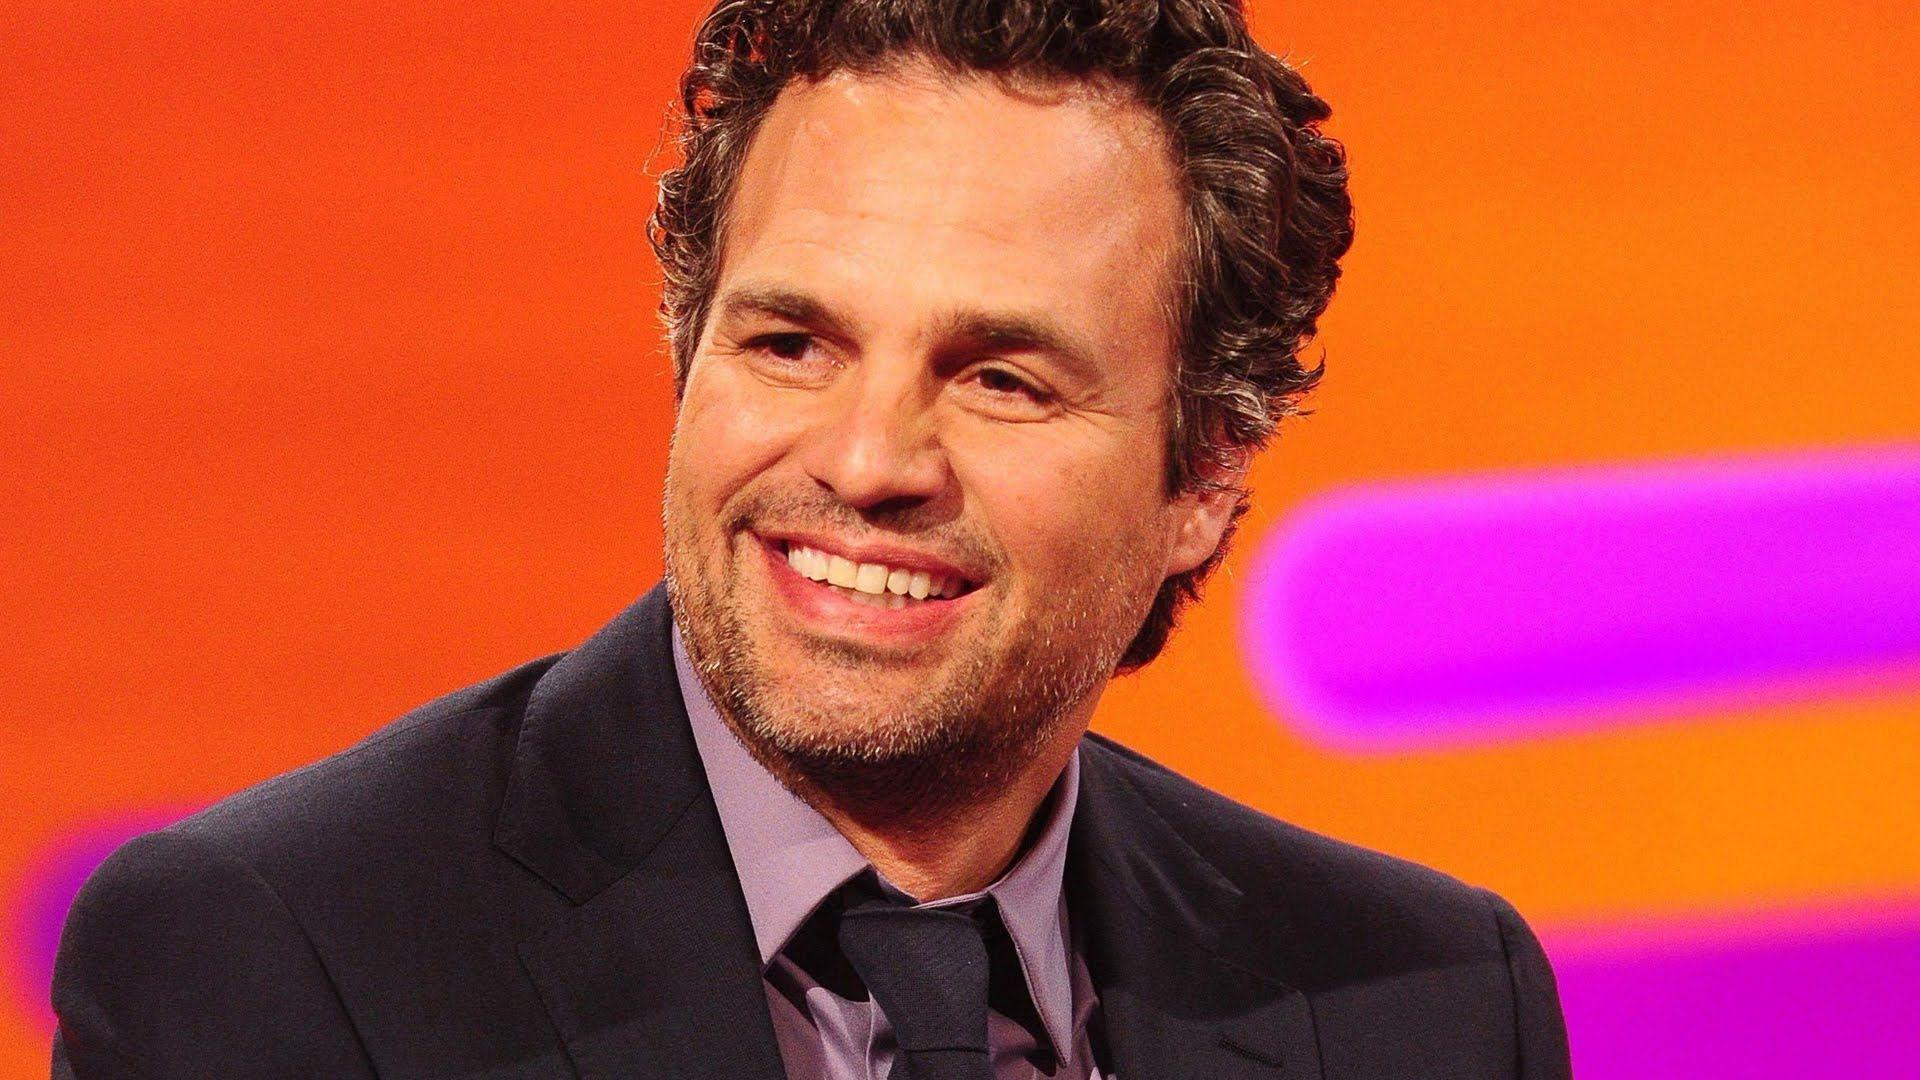 Mark Ruffalo Smile Wallpapers 56120 1920x1080 px ~ HDWallSource